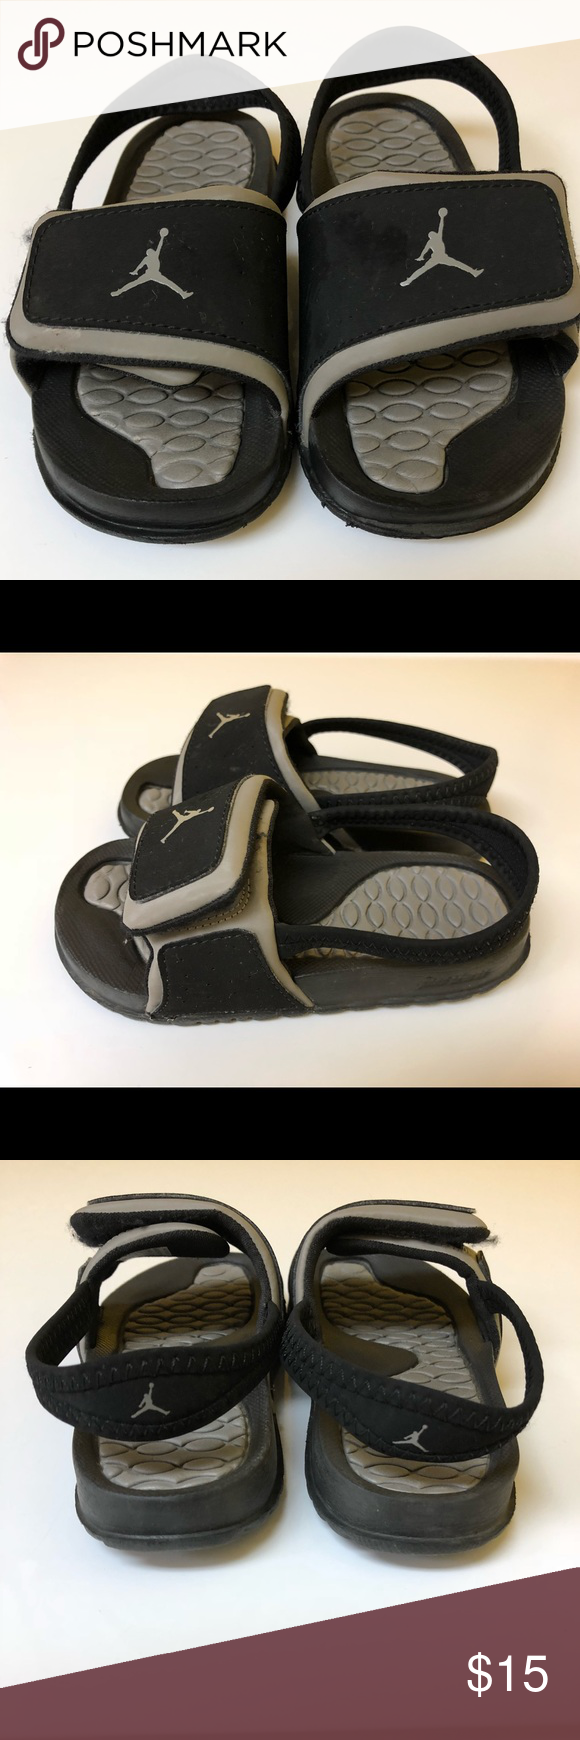 5fc01dfc3d3943 Jordan slides (size 9C) black   grey Jordan slides size 9C good used  condition  15.00 Jordan Shoes Sandals   Flip Flops